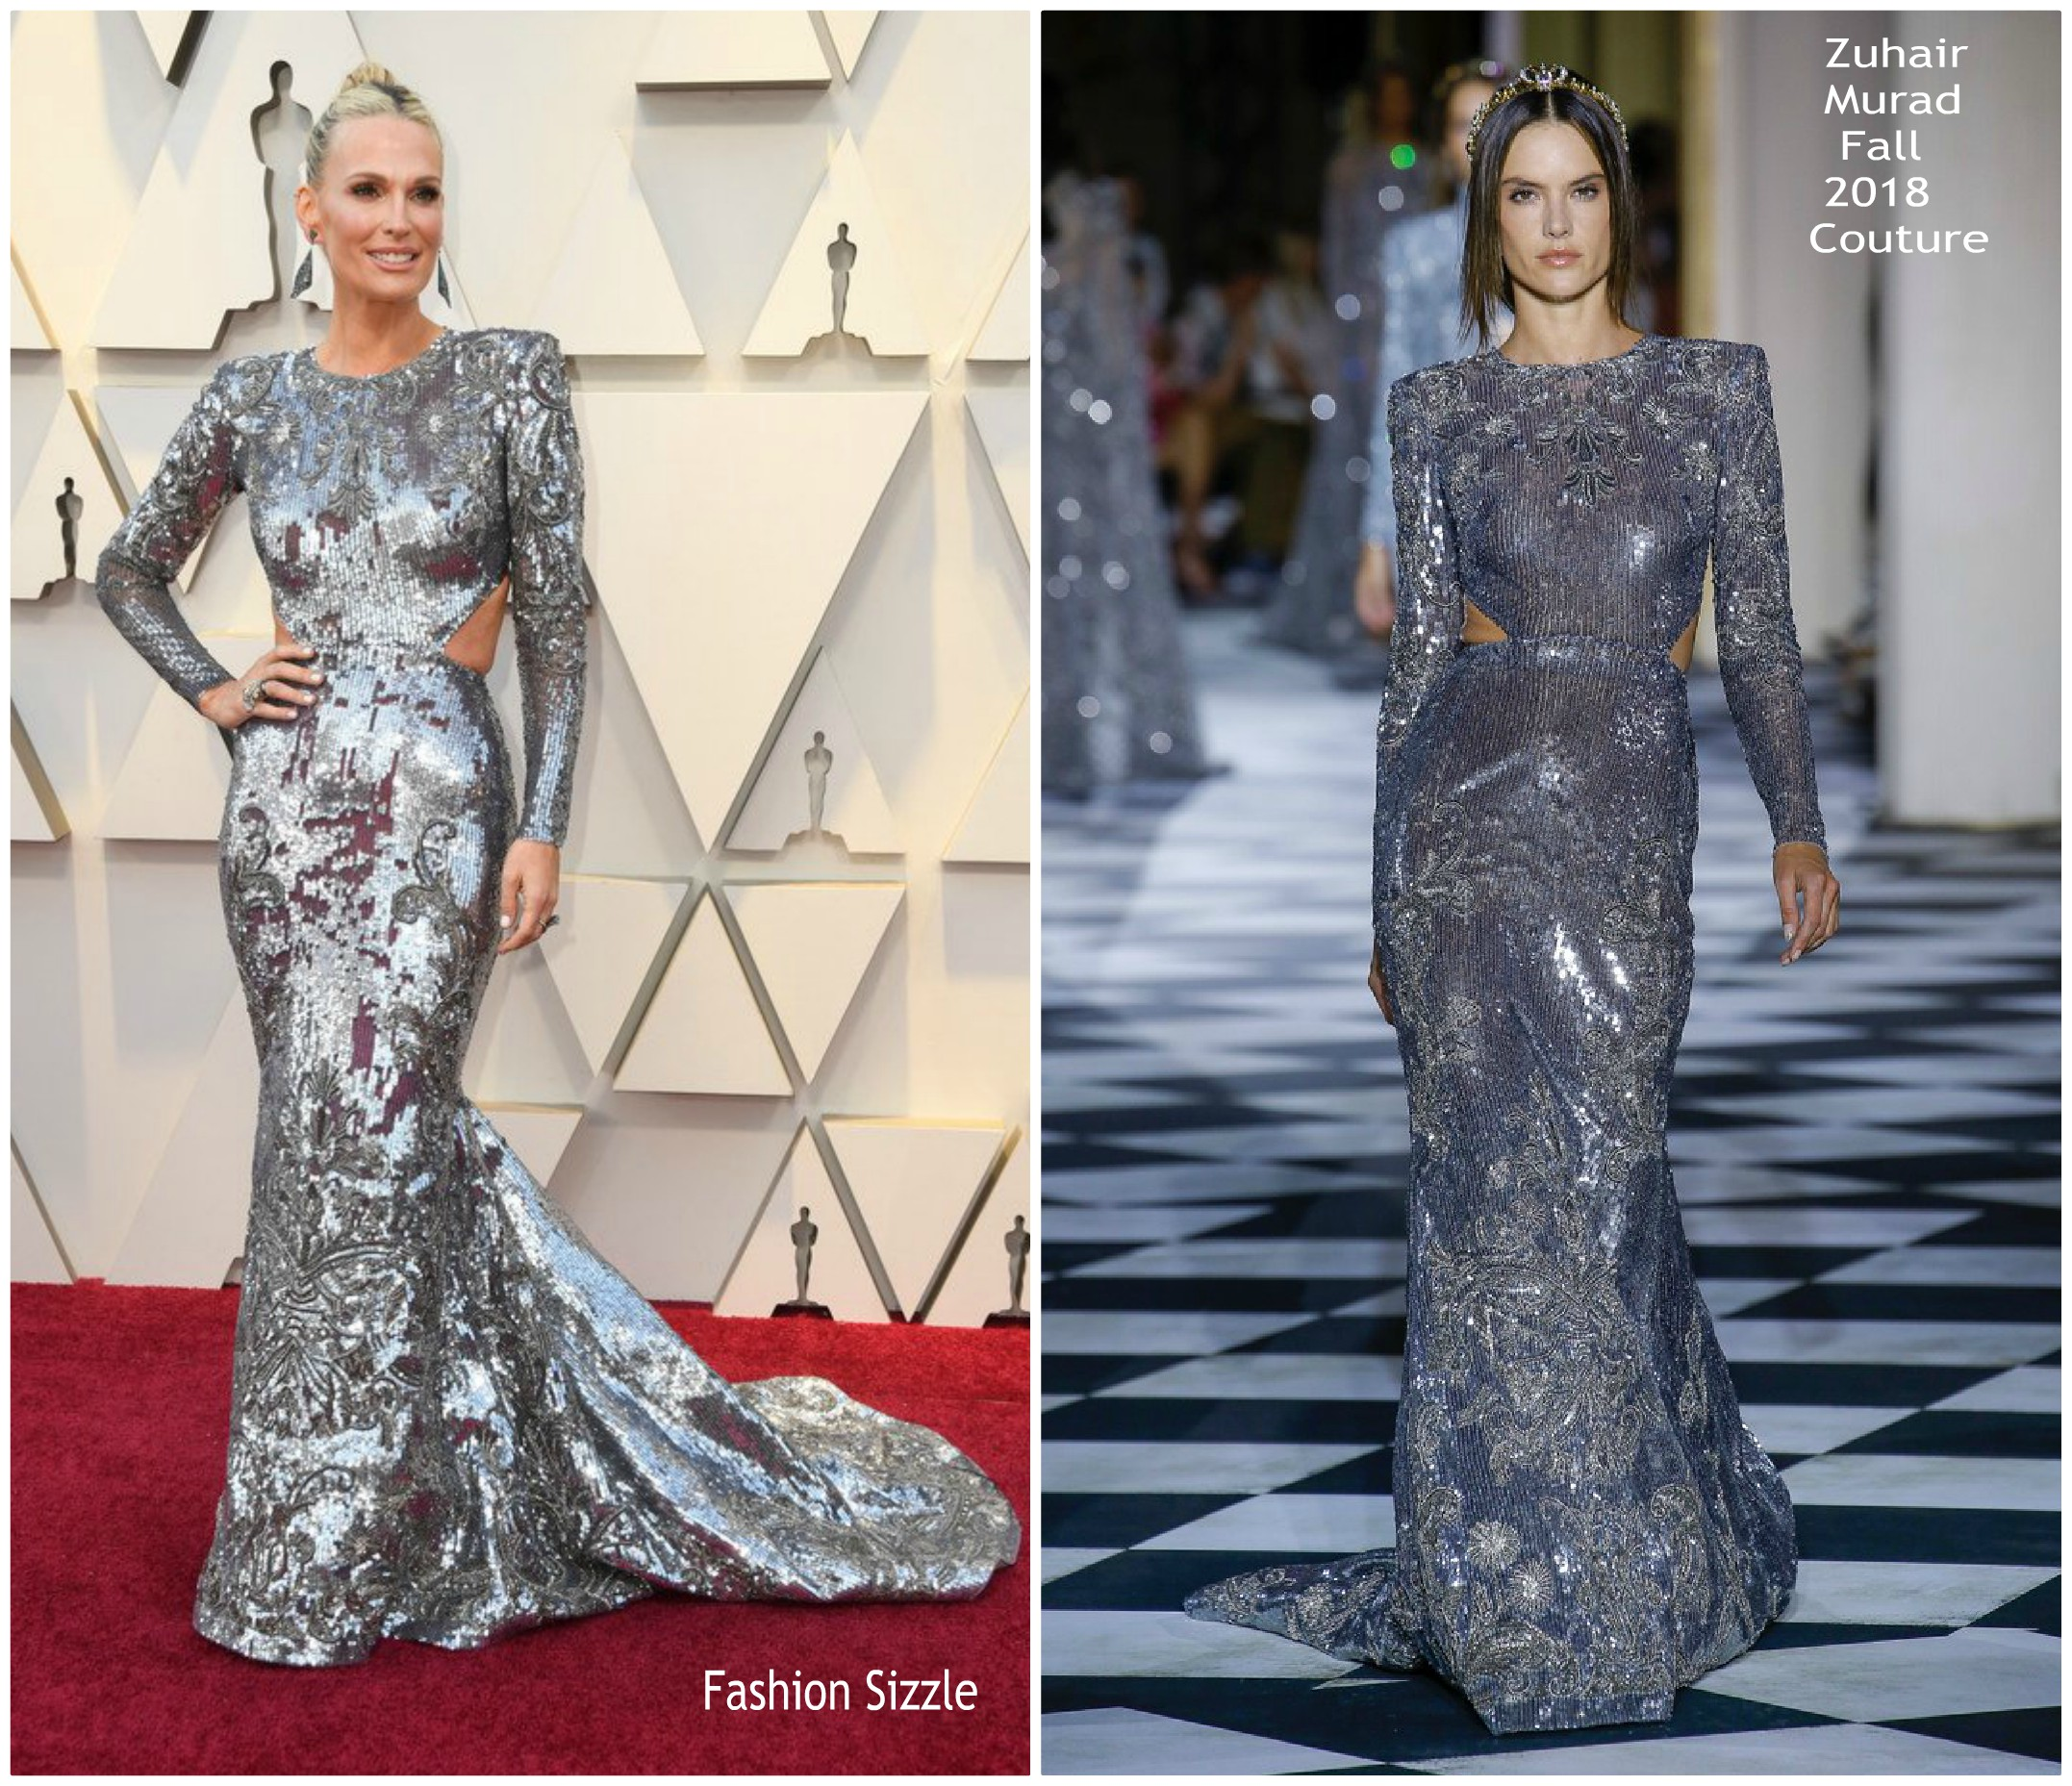 molly-sims-in-zuhair-murad-couture-2019-oscars